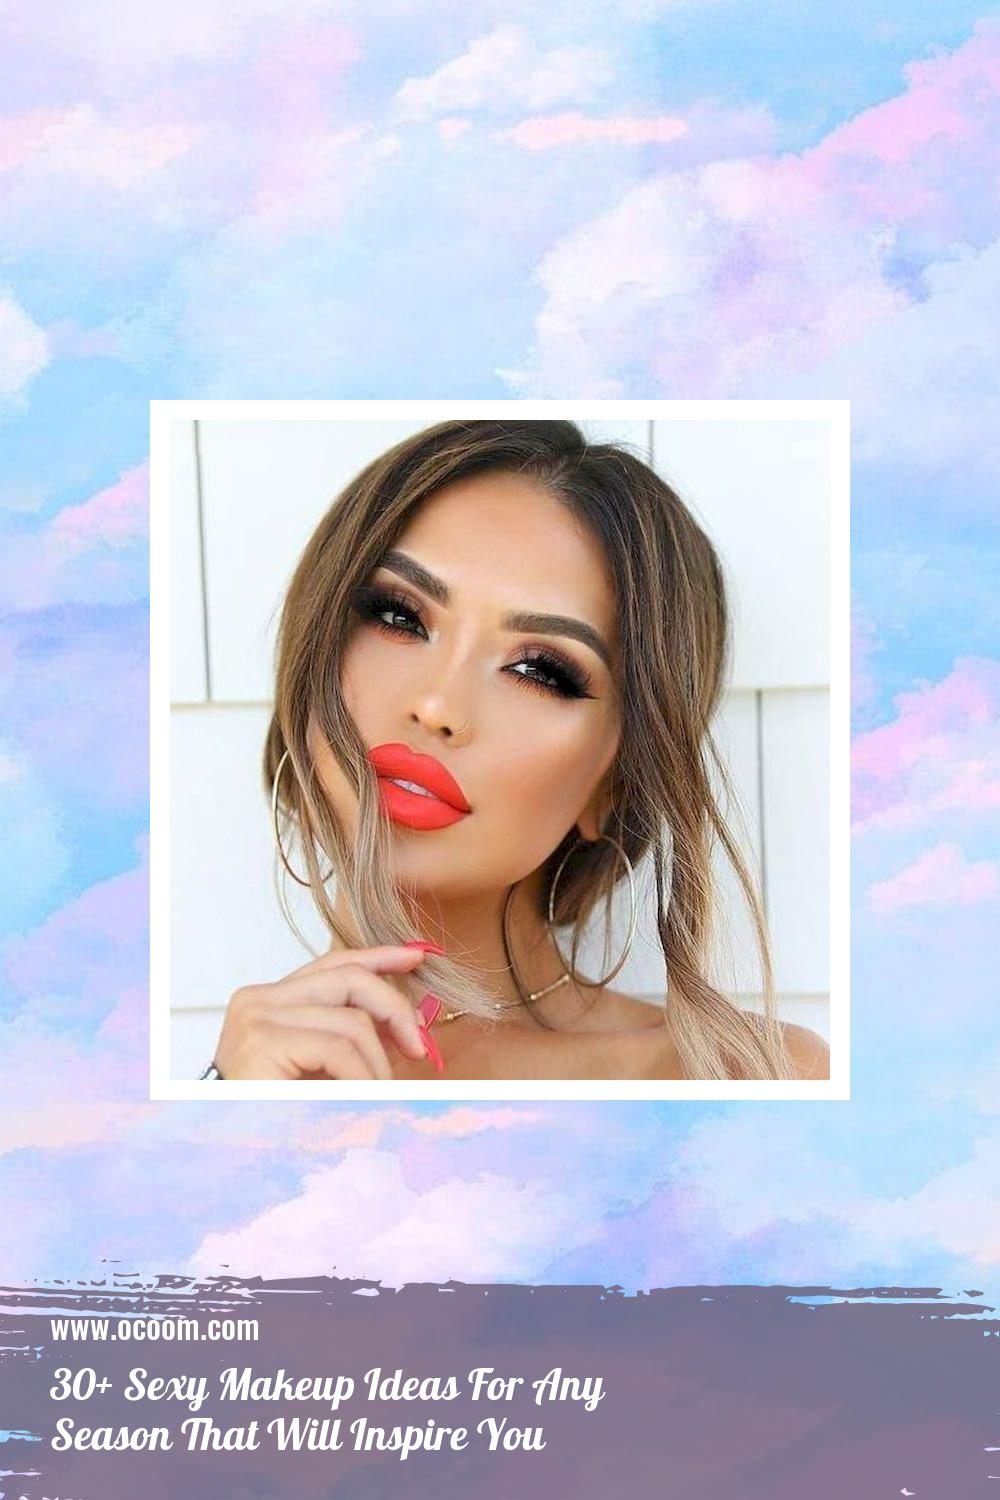 30+ Sexy Makeup Ideas For Any Season That Will Inspire You 32